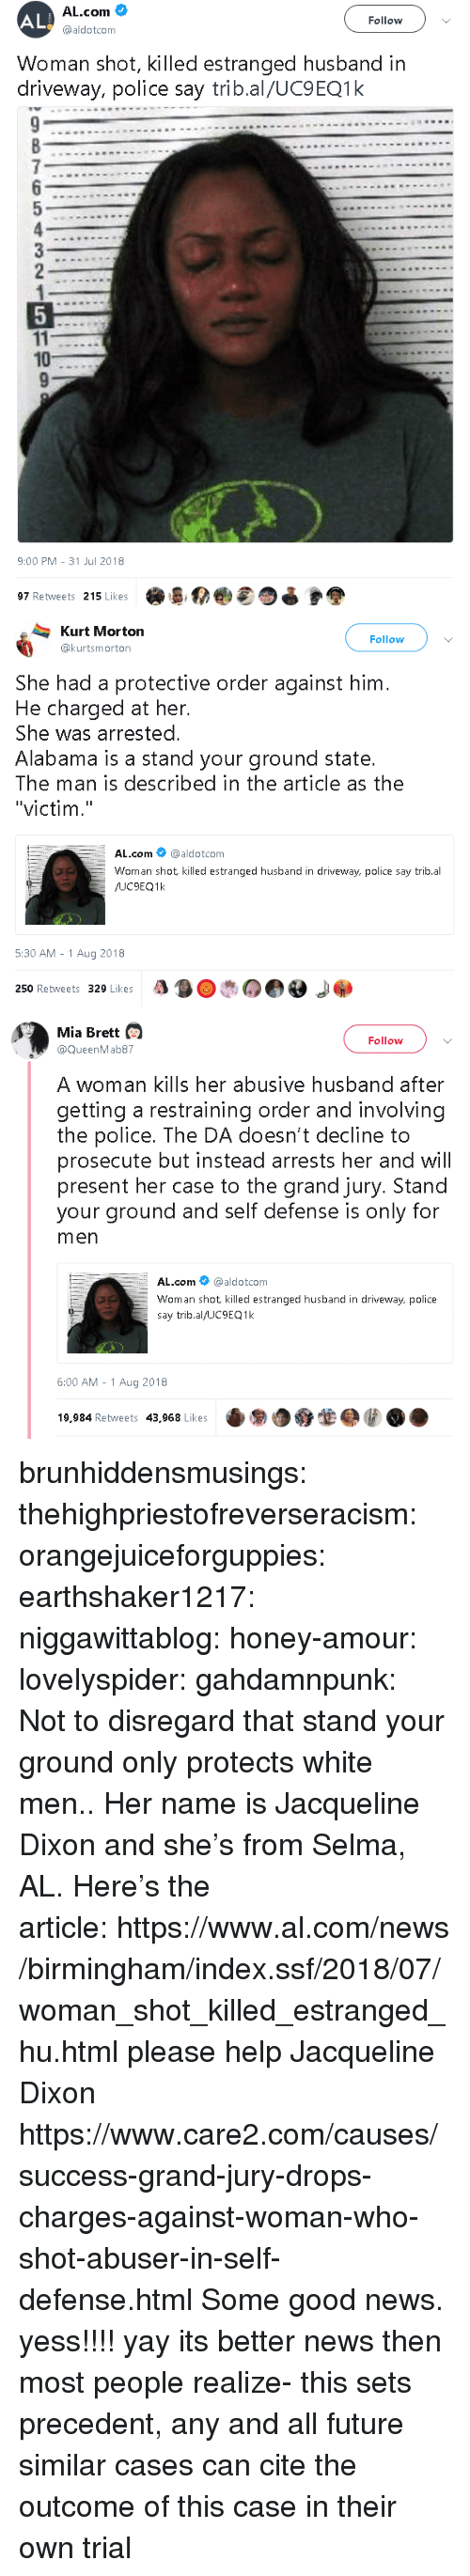 "Future, News, and Police: AL  AL.com  @aldotcom  Follow  Woman shot, killed estranged husband in  driveway, police say trib.al/UC9EQ1k  10  9:00 PM-31 Jul 2018  97 Retweets 215 Likes   Kurt Morton  @kurtsmorton  Follow  She had a protective order against him  He charged at her.  She was arrested.  Alabama is a stand your ground state.  The man is described in the article as the  ""victim.""  AL.com @aldotcom  Woman shot killed estranged husband in driveway, police say trib.al  5:30 AM -1 Aug 2018  250 Retweets 329 Likes   Mia Brett  Follow  @QueenMab87  A woman kills her abusive husband after  getting a restraining order and involving  the police. The DA doesn't decline to  prosecute but instead arrests her and will  present her case to the grand jury. Stand  your ground and self defense is only for  men  AL.com@aldotcom  Woman shot killed estranged husband in driveway, police  say trib.al/UC9EQ1k  6:00 AM -1 Aug 2018  19,984 Retweets 43,968 Likese9O brunhiddensmusings: thehighpriestofreverseracism:  orangejuiceforguppies:  earthshaker1217:  niggawittablog:   honey-amour:  lovelyspider:   gahdamnpunk: Not to disregard that stand your ground only protects white men.. Her name is Jacqueline Dixon and she's from Selma, AL. Here's the article: https://www.al.com/news/birmingham/index.ssf/2018/07/woman_shot_killed_estranged_hu.html   please help Jacqueline Dixon   https://www.care2.com/causes/success-grand-jury-drops-charges-against-woman-who-shot-abuser-in-self-defense.html   Some good news.  yess!!!!  yay  its better news then most people realize- this sets precedent, any and all future similar cases can cite the outcome of this case in their own trial"